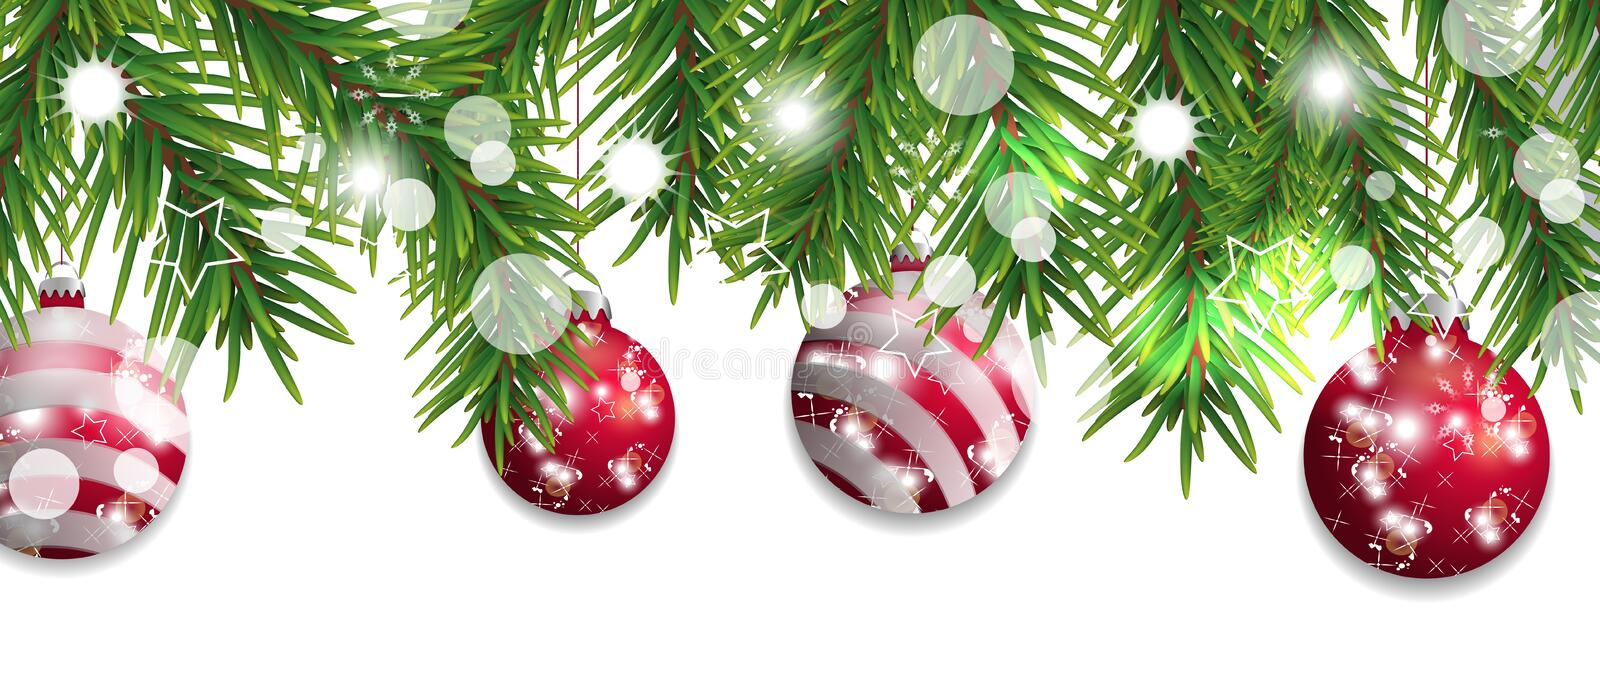 Christmas and happy New Year border of Christmas tree branches with red balls isolated on white background. Holidays decoration. royalty free illustration